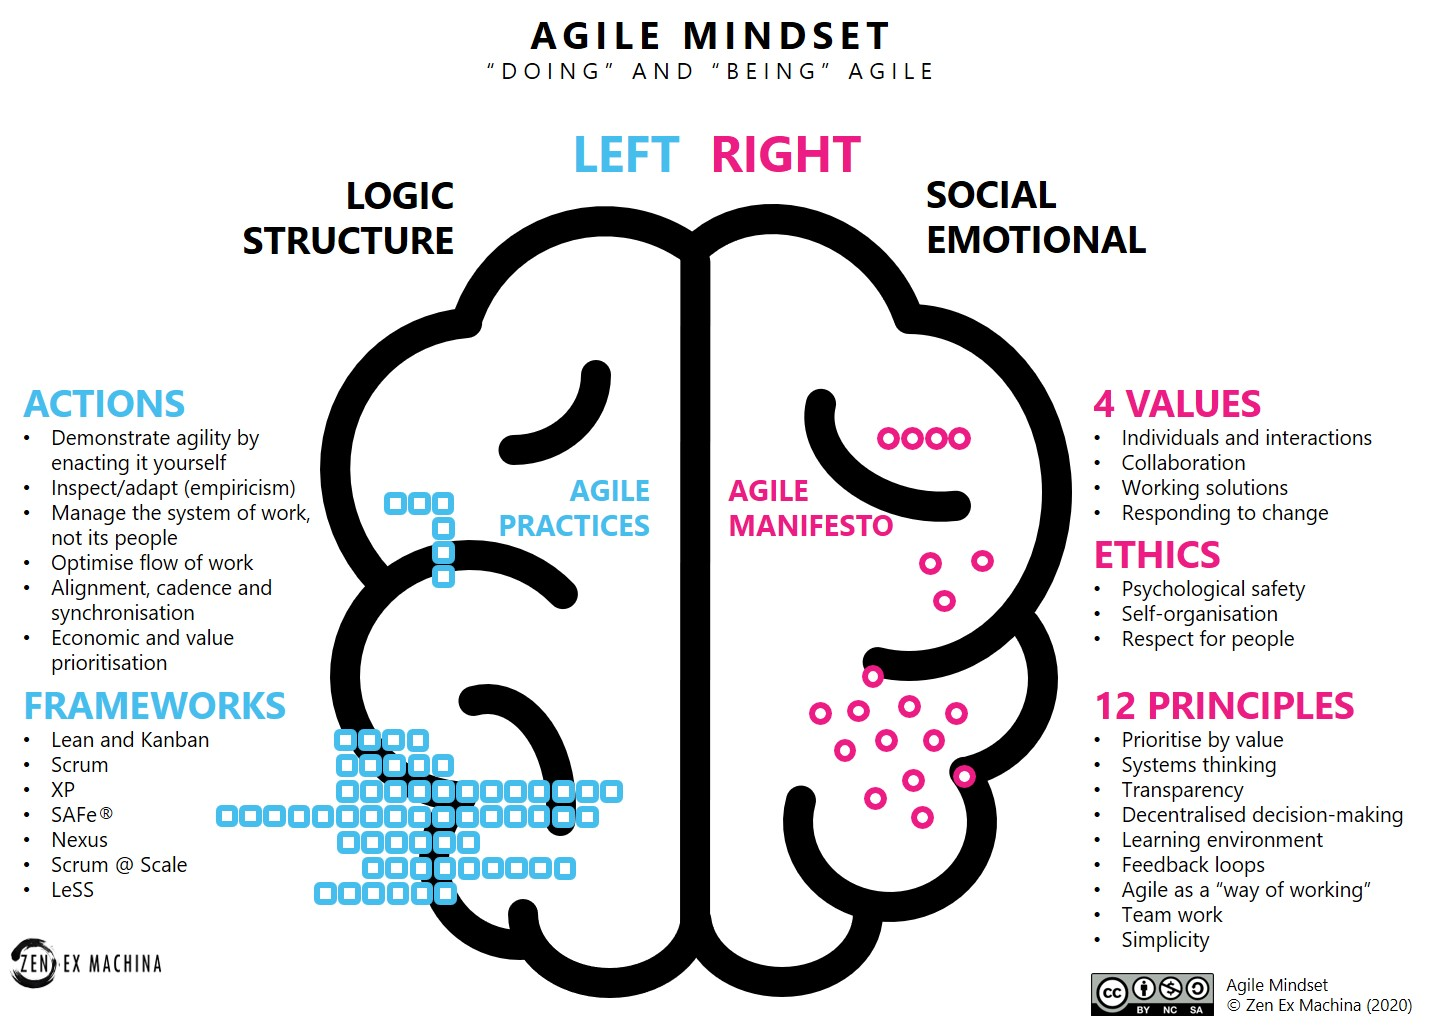 The Agile Mindset